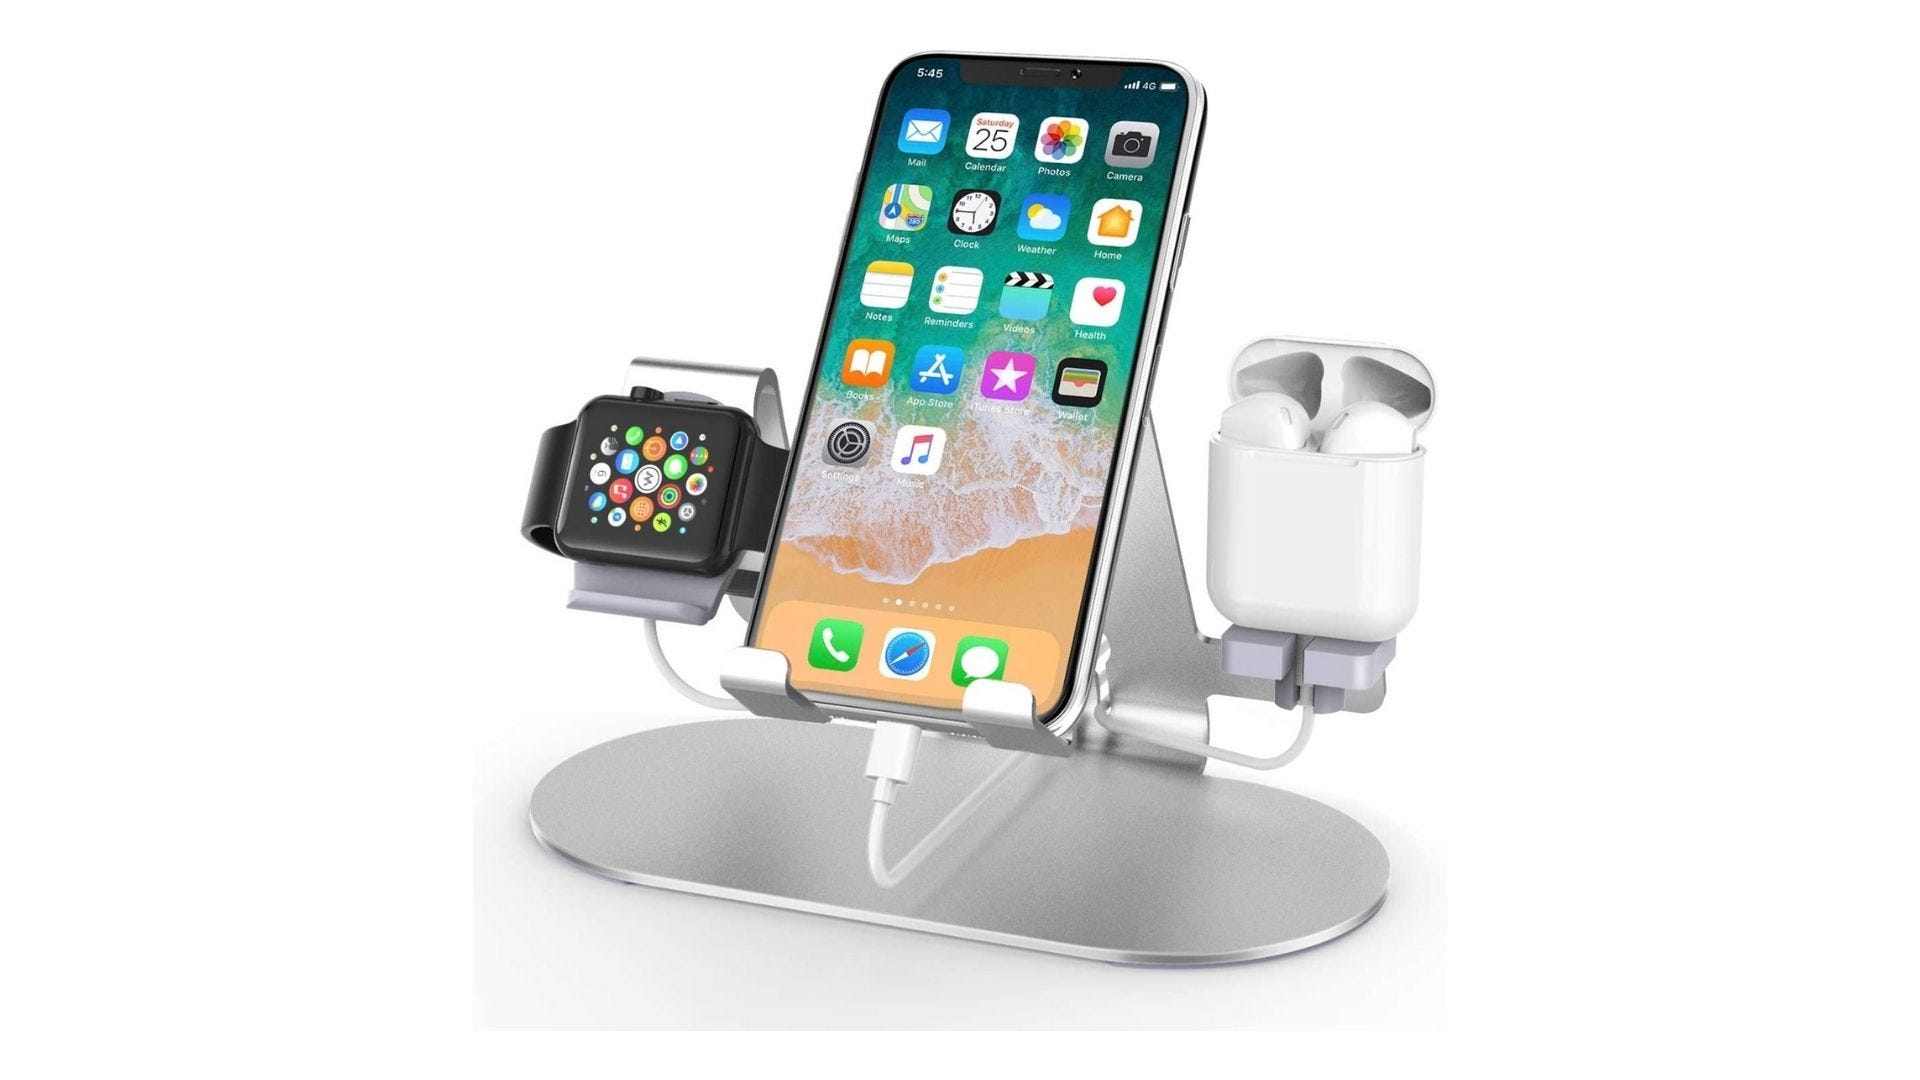 3 in 1 aluminum charging station for iphone apple watch and airpods horime